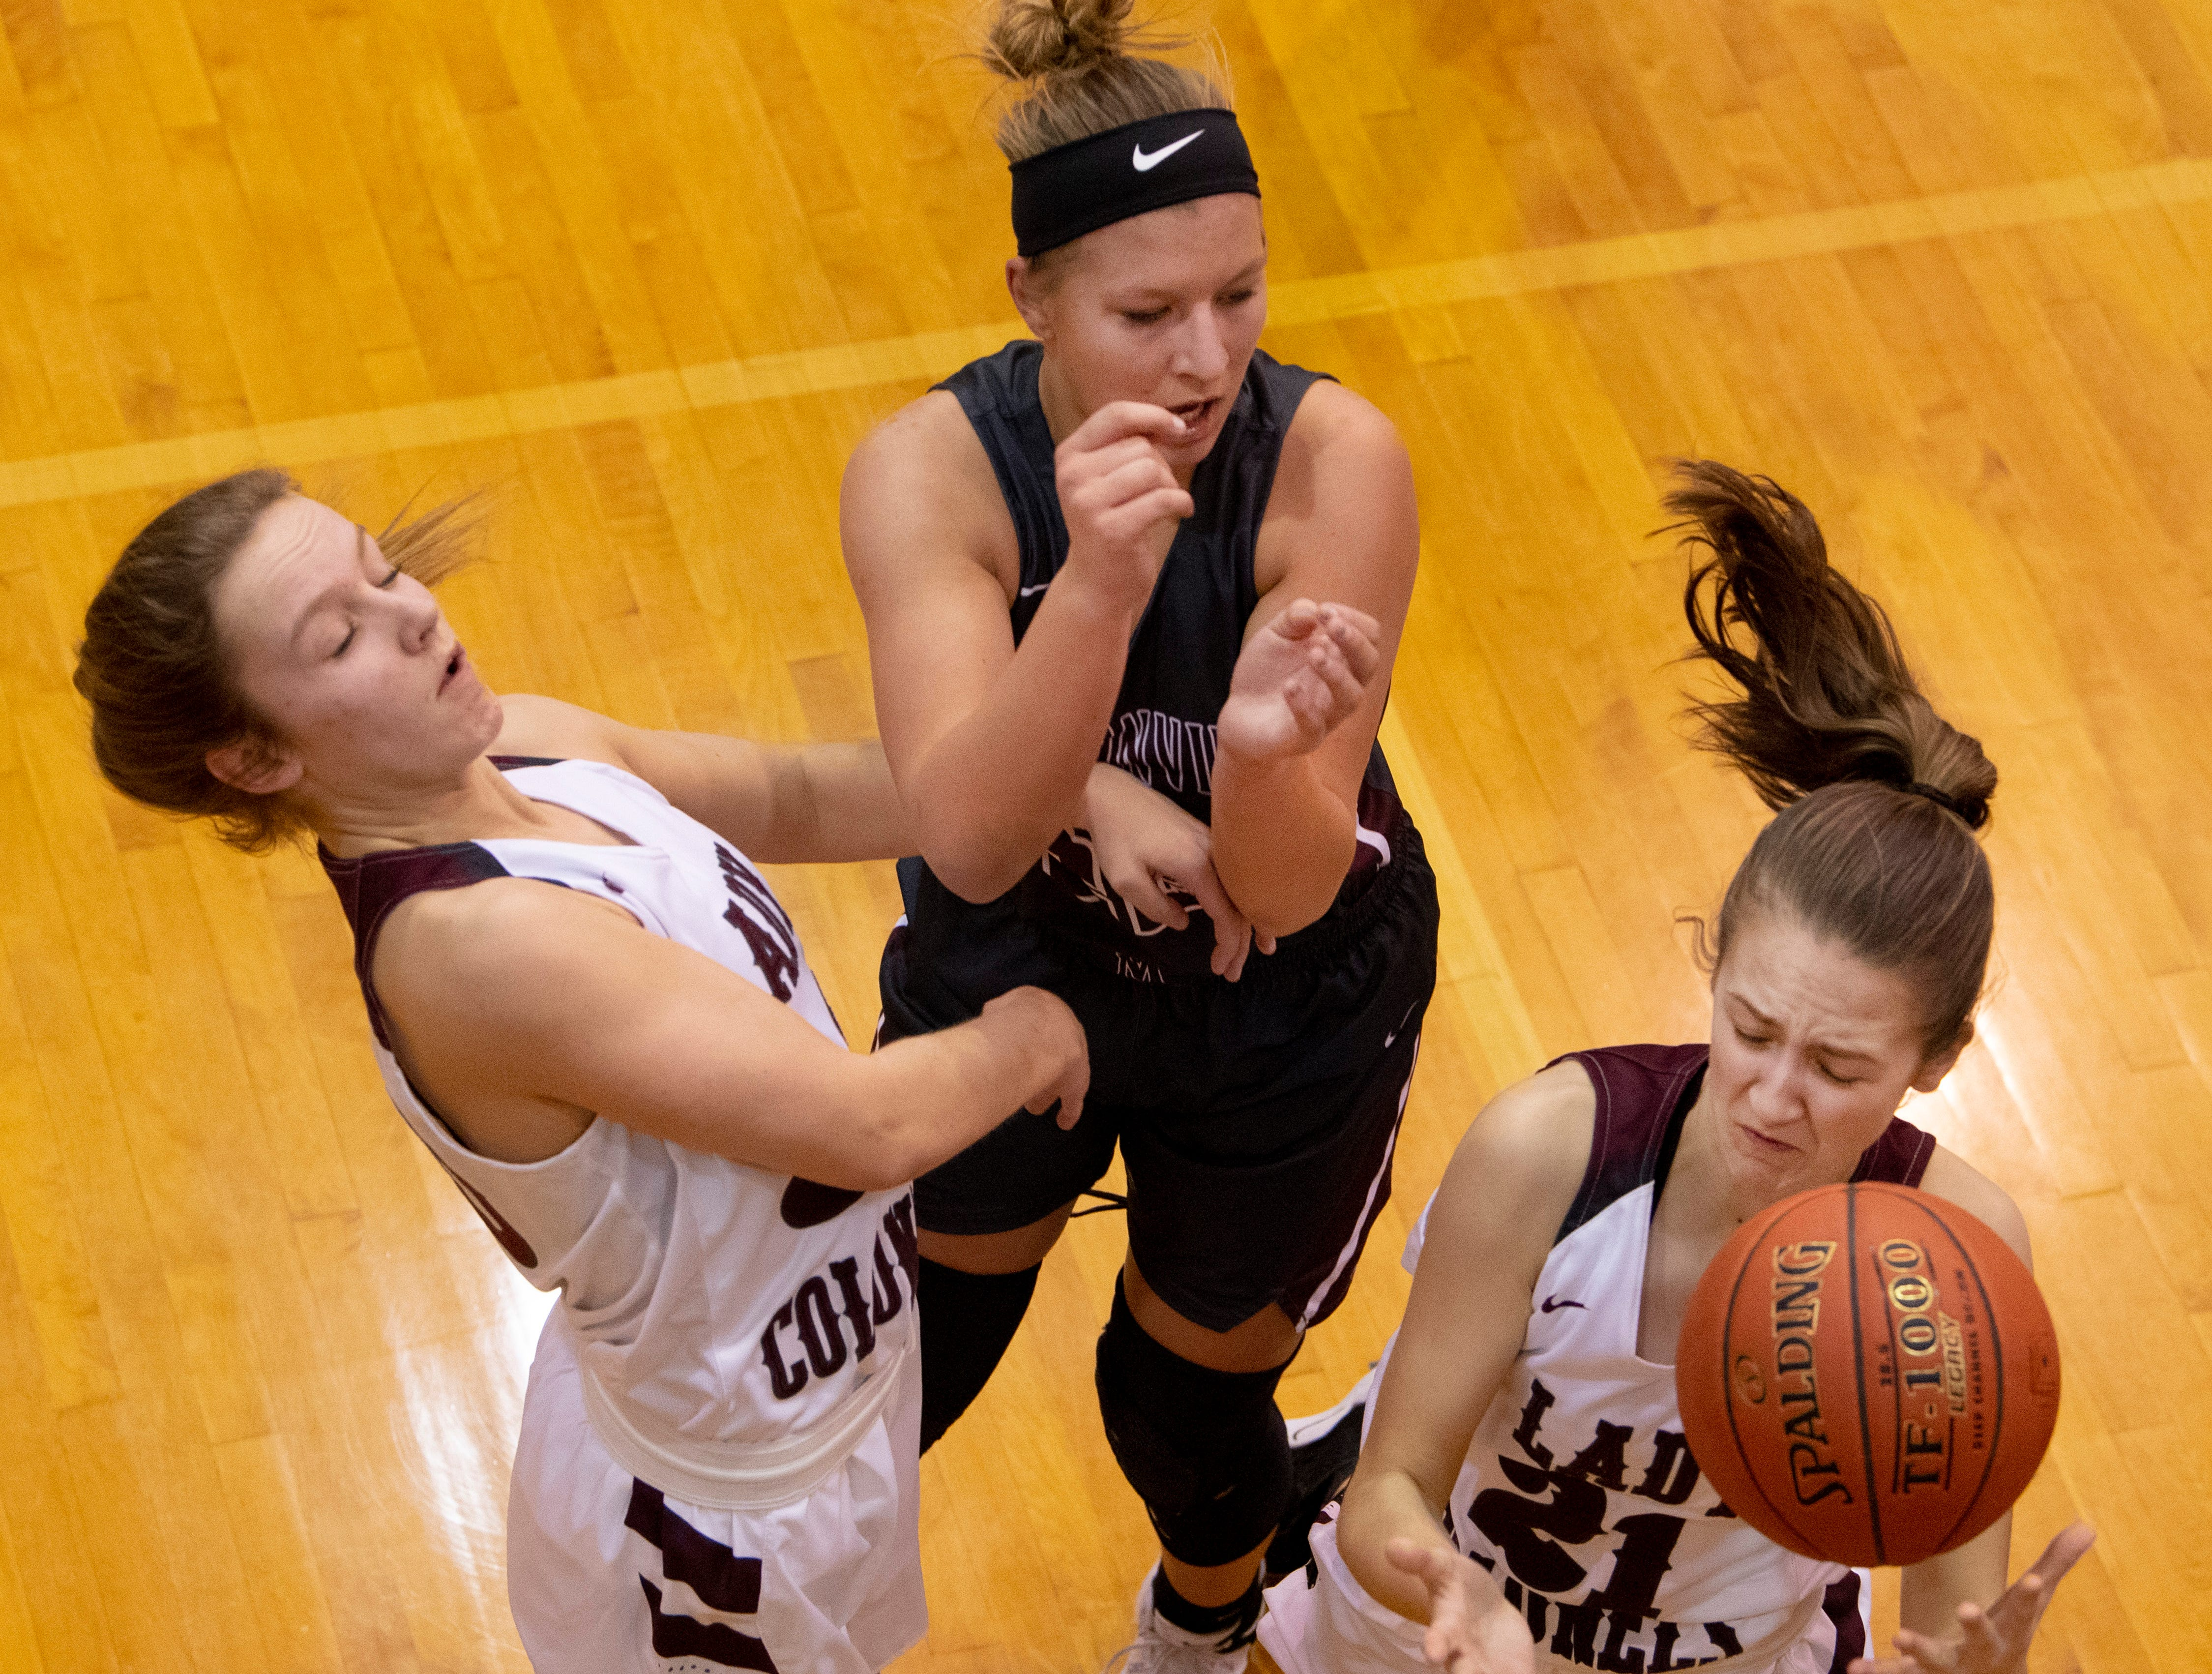 Henderson County's Emilee Hope (30) and Henderson County's Graci Risely (21) go for a rebound against Madisonville's Camryn LaGrange (22) during the Girls Region Tournament semifinals at the Rocket Arena in Marion, Ky., Monday night.